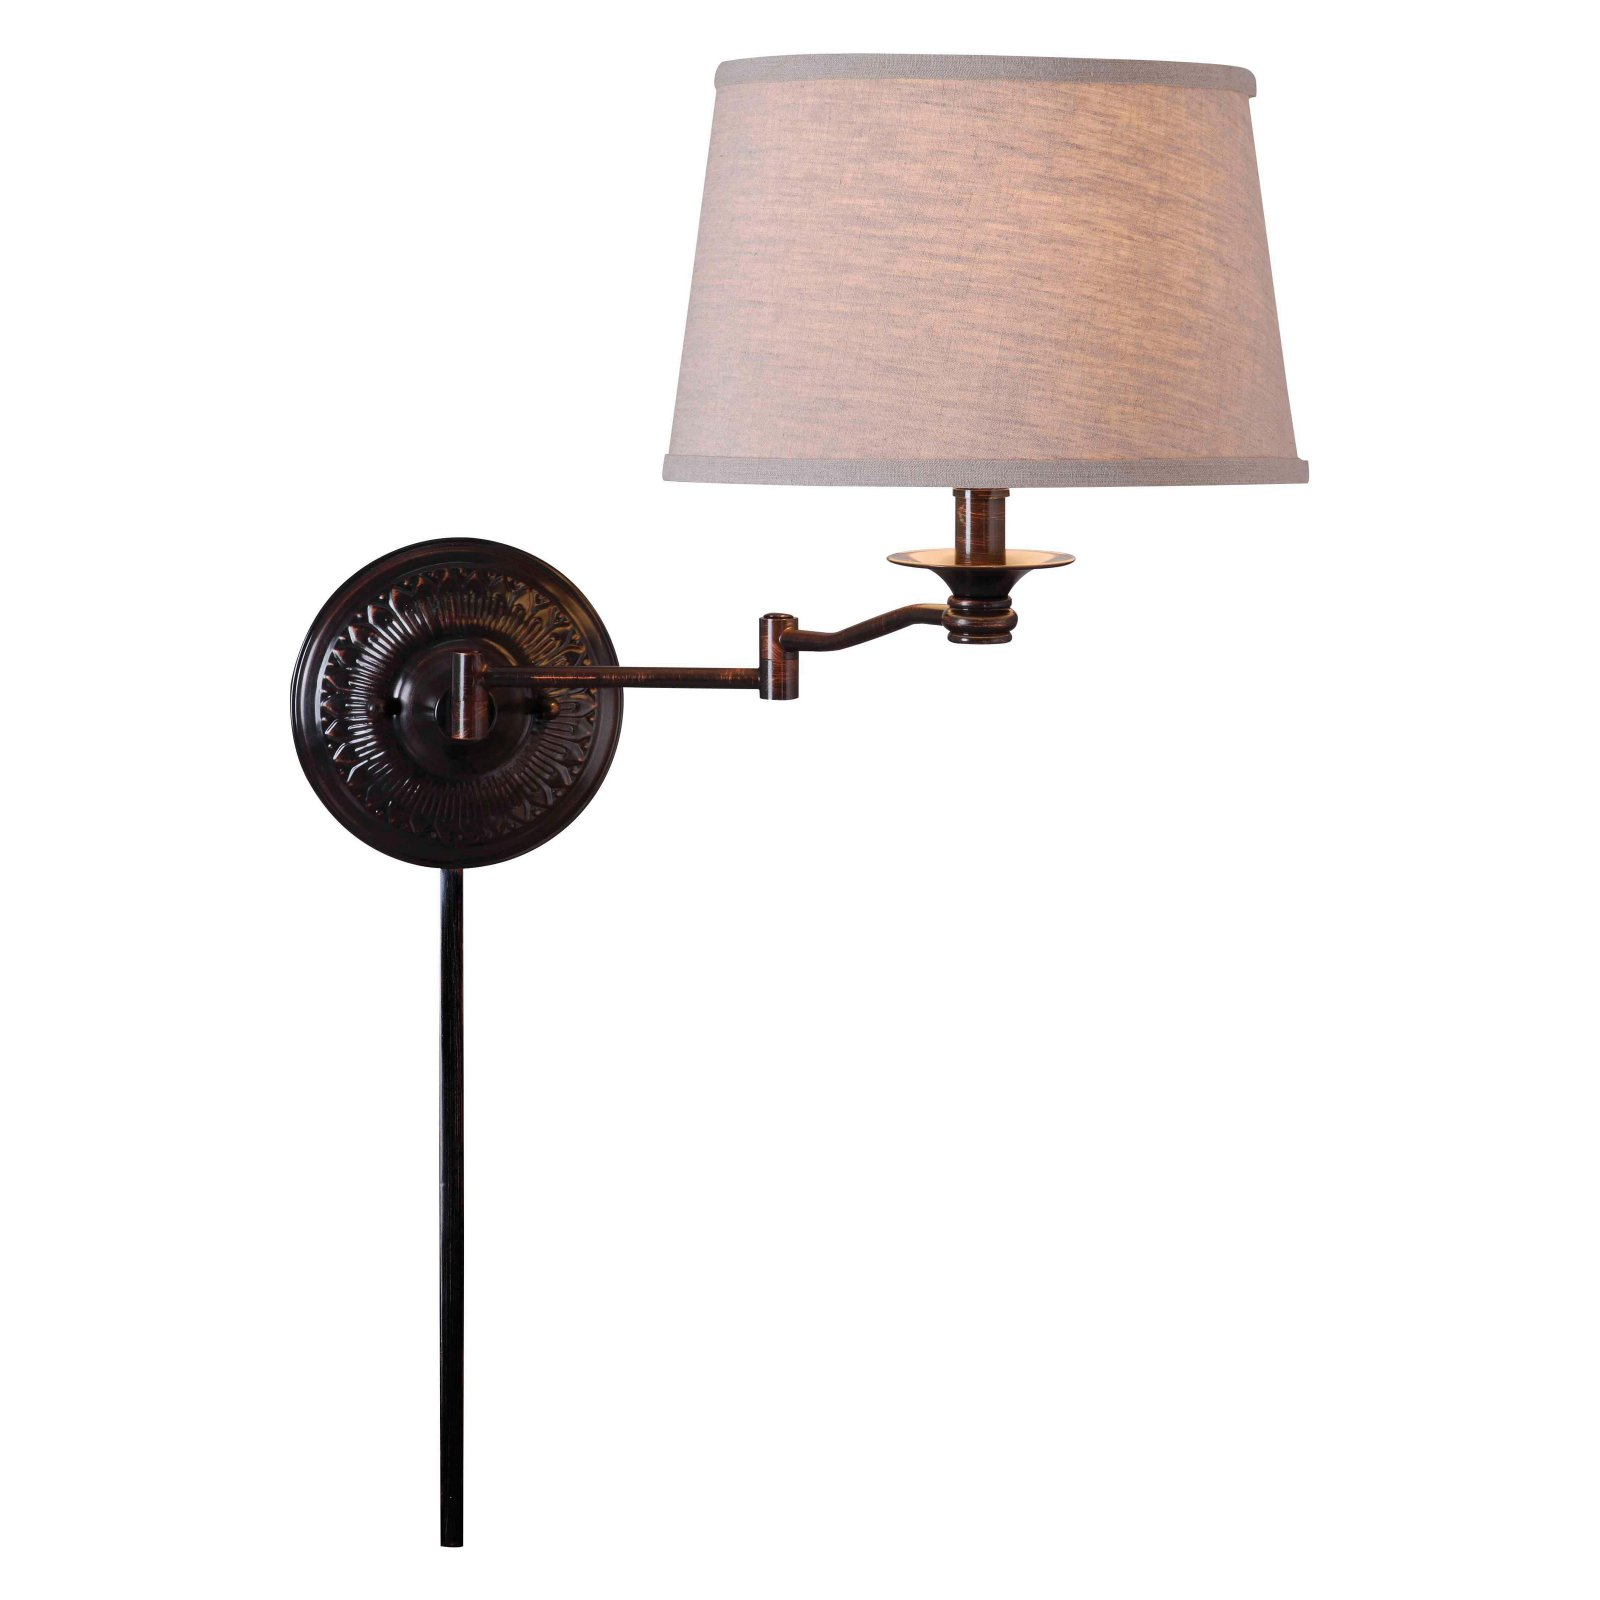 Kenroy Home Riverside 32217CBZ Swing Arm Wall Lamp by Kenroy Home